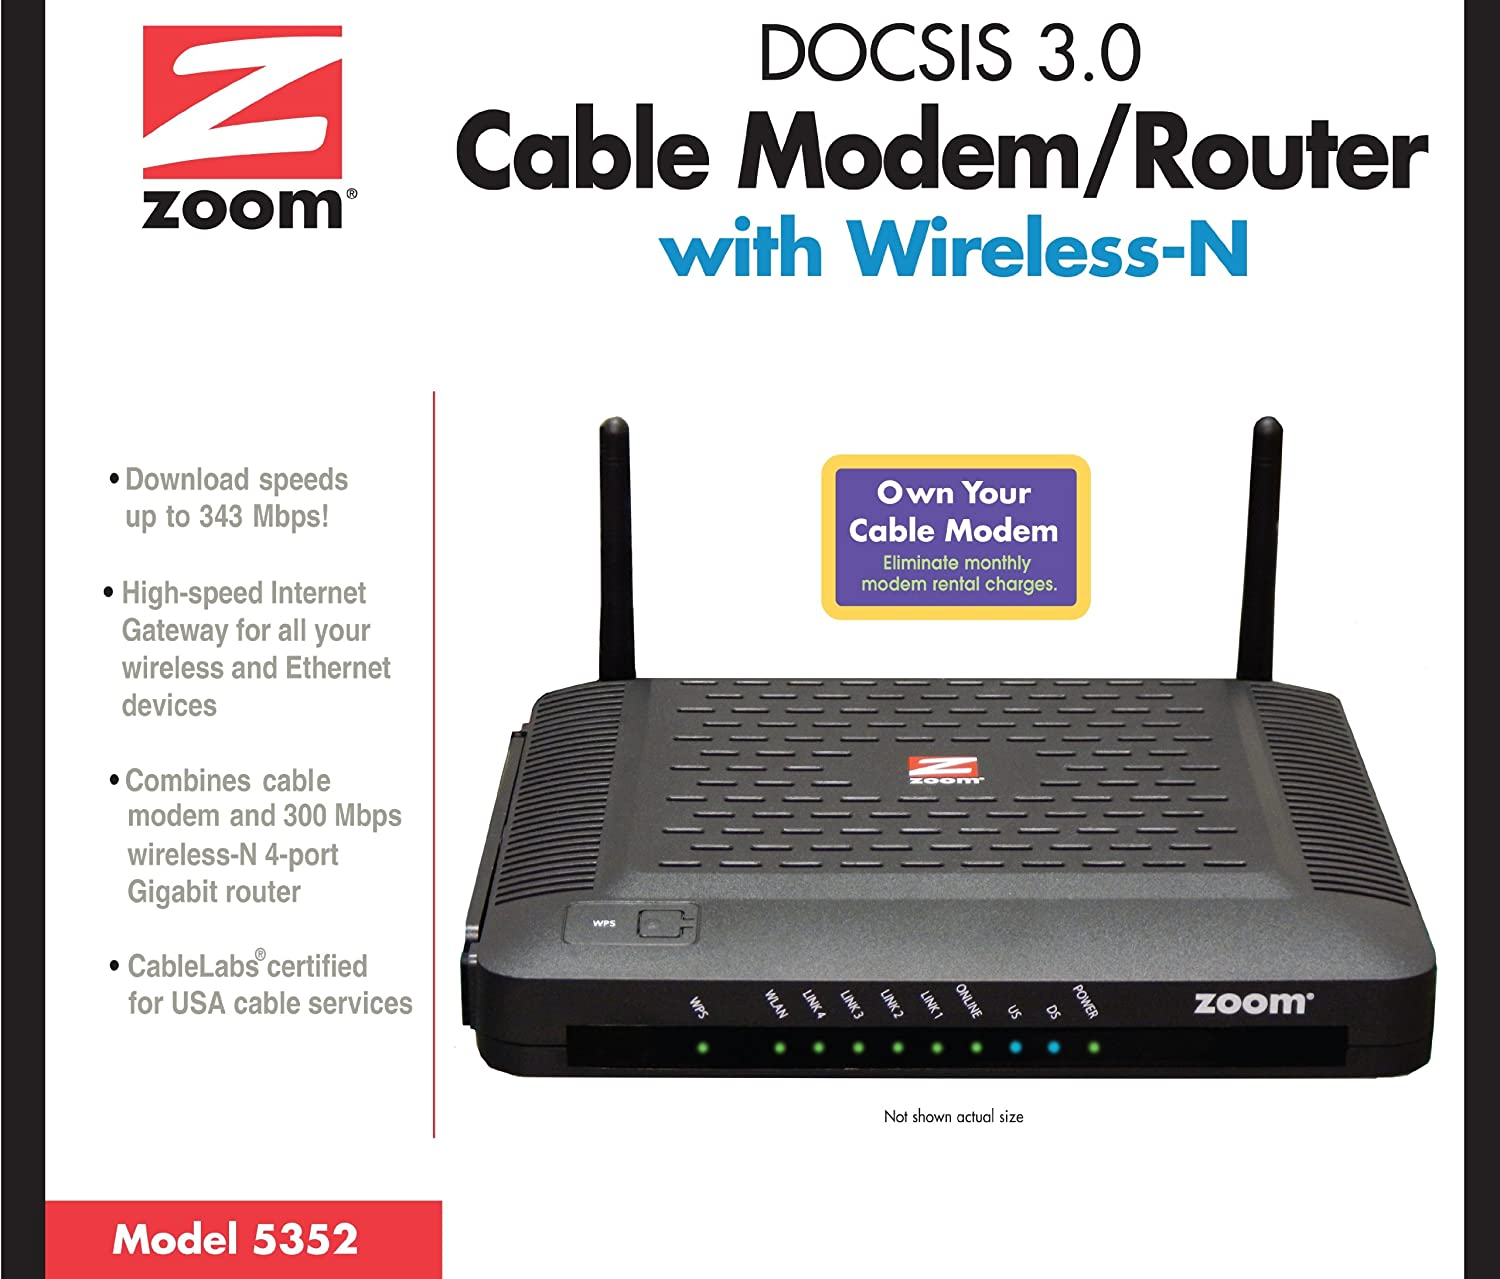 Amazon.com: ZOOM DOCSIS 3.0 Cable Modem and Wireless-N Router (5352 ...